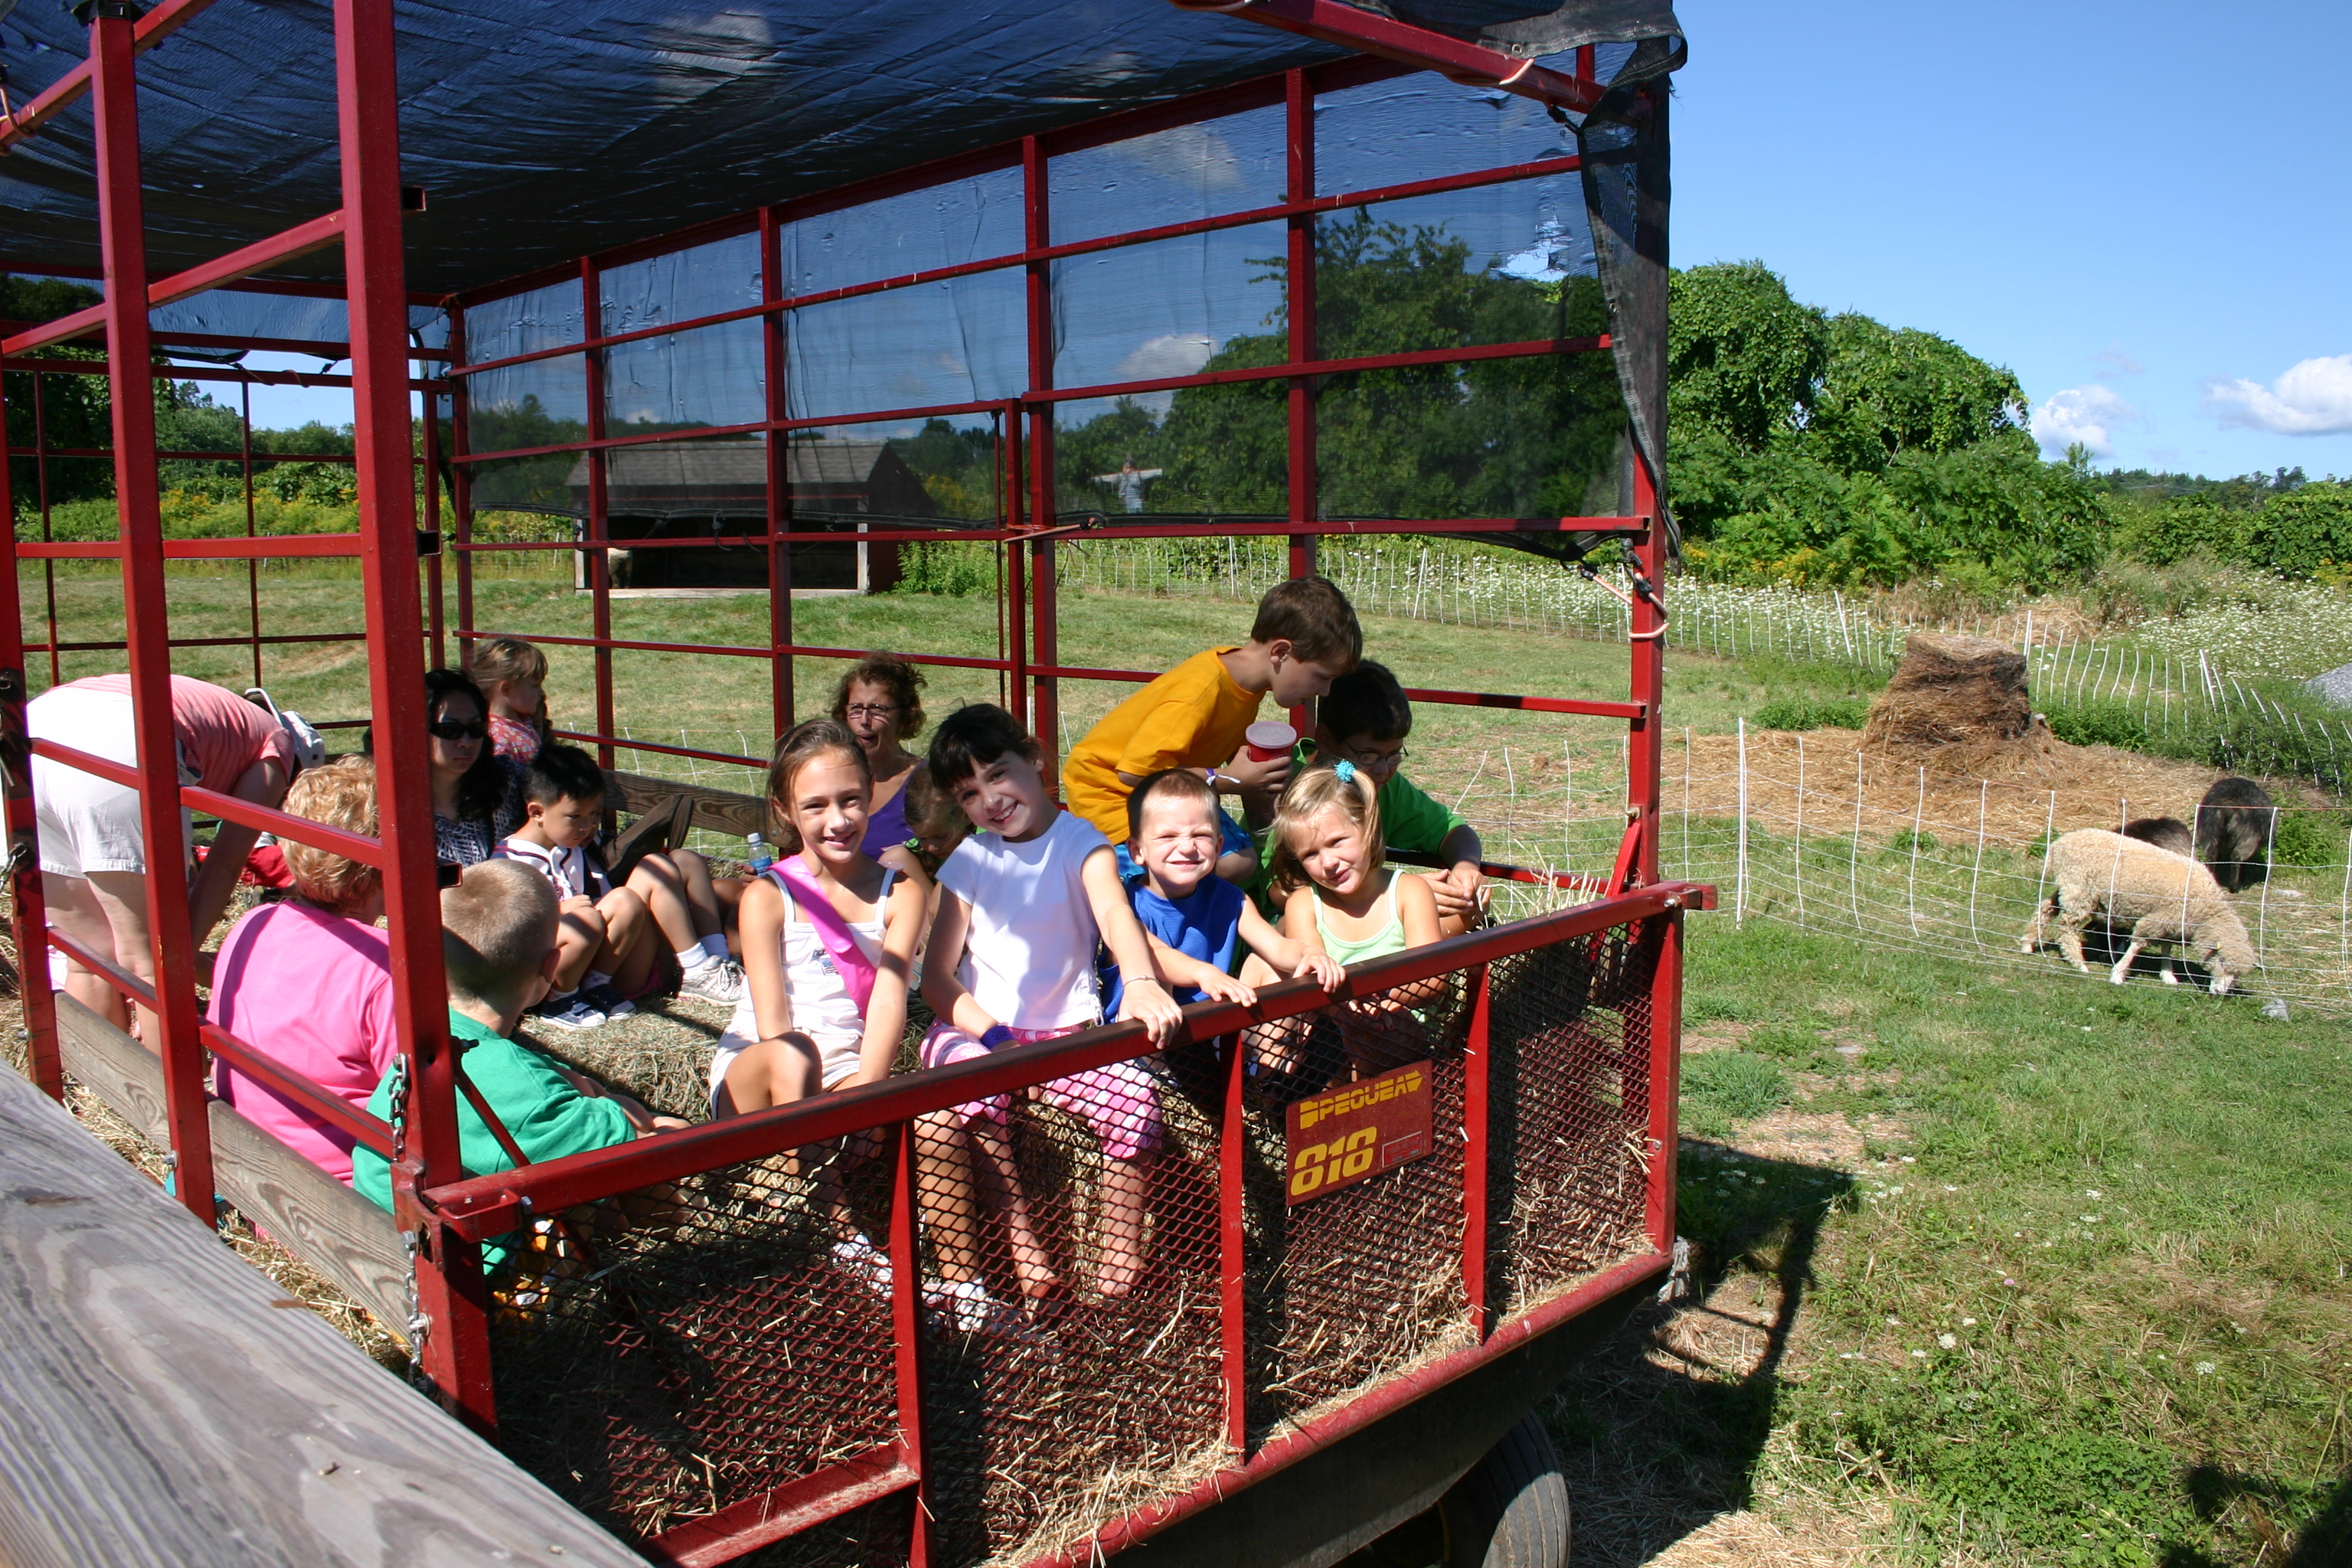 Davis Farmland is OPEN today from 9:30 – 6 with last admission at 4:30.